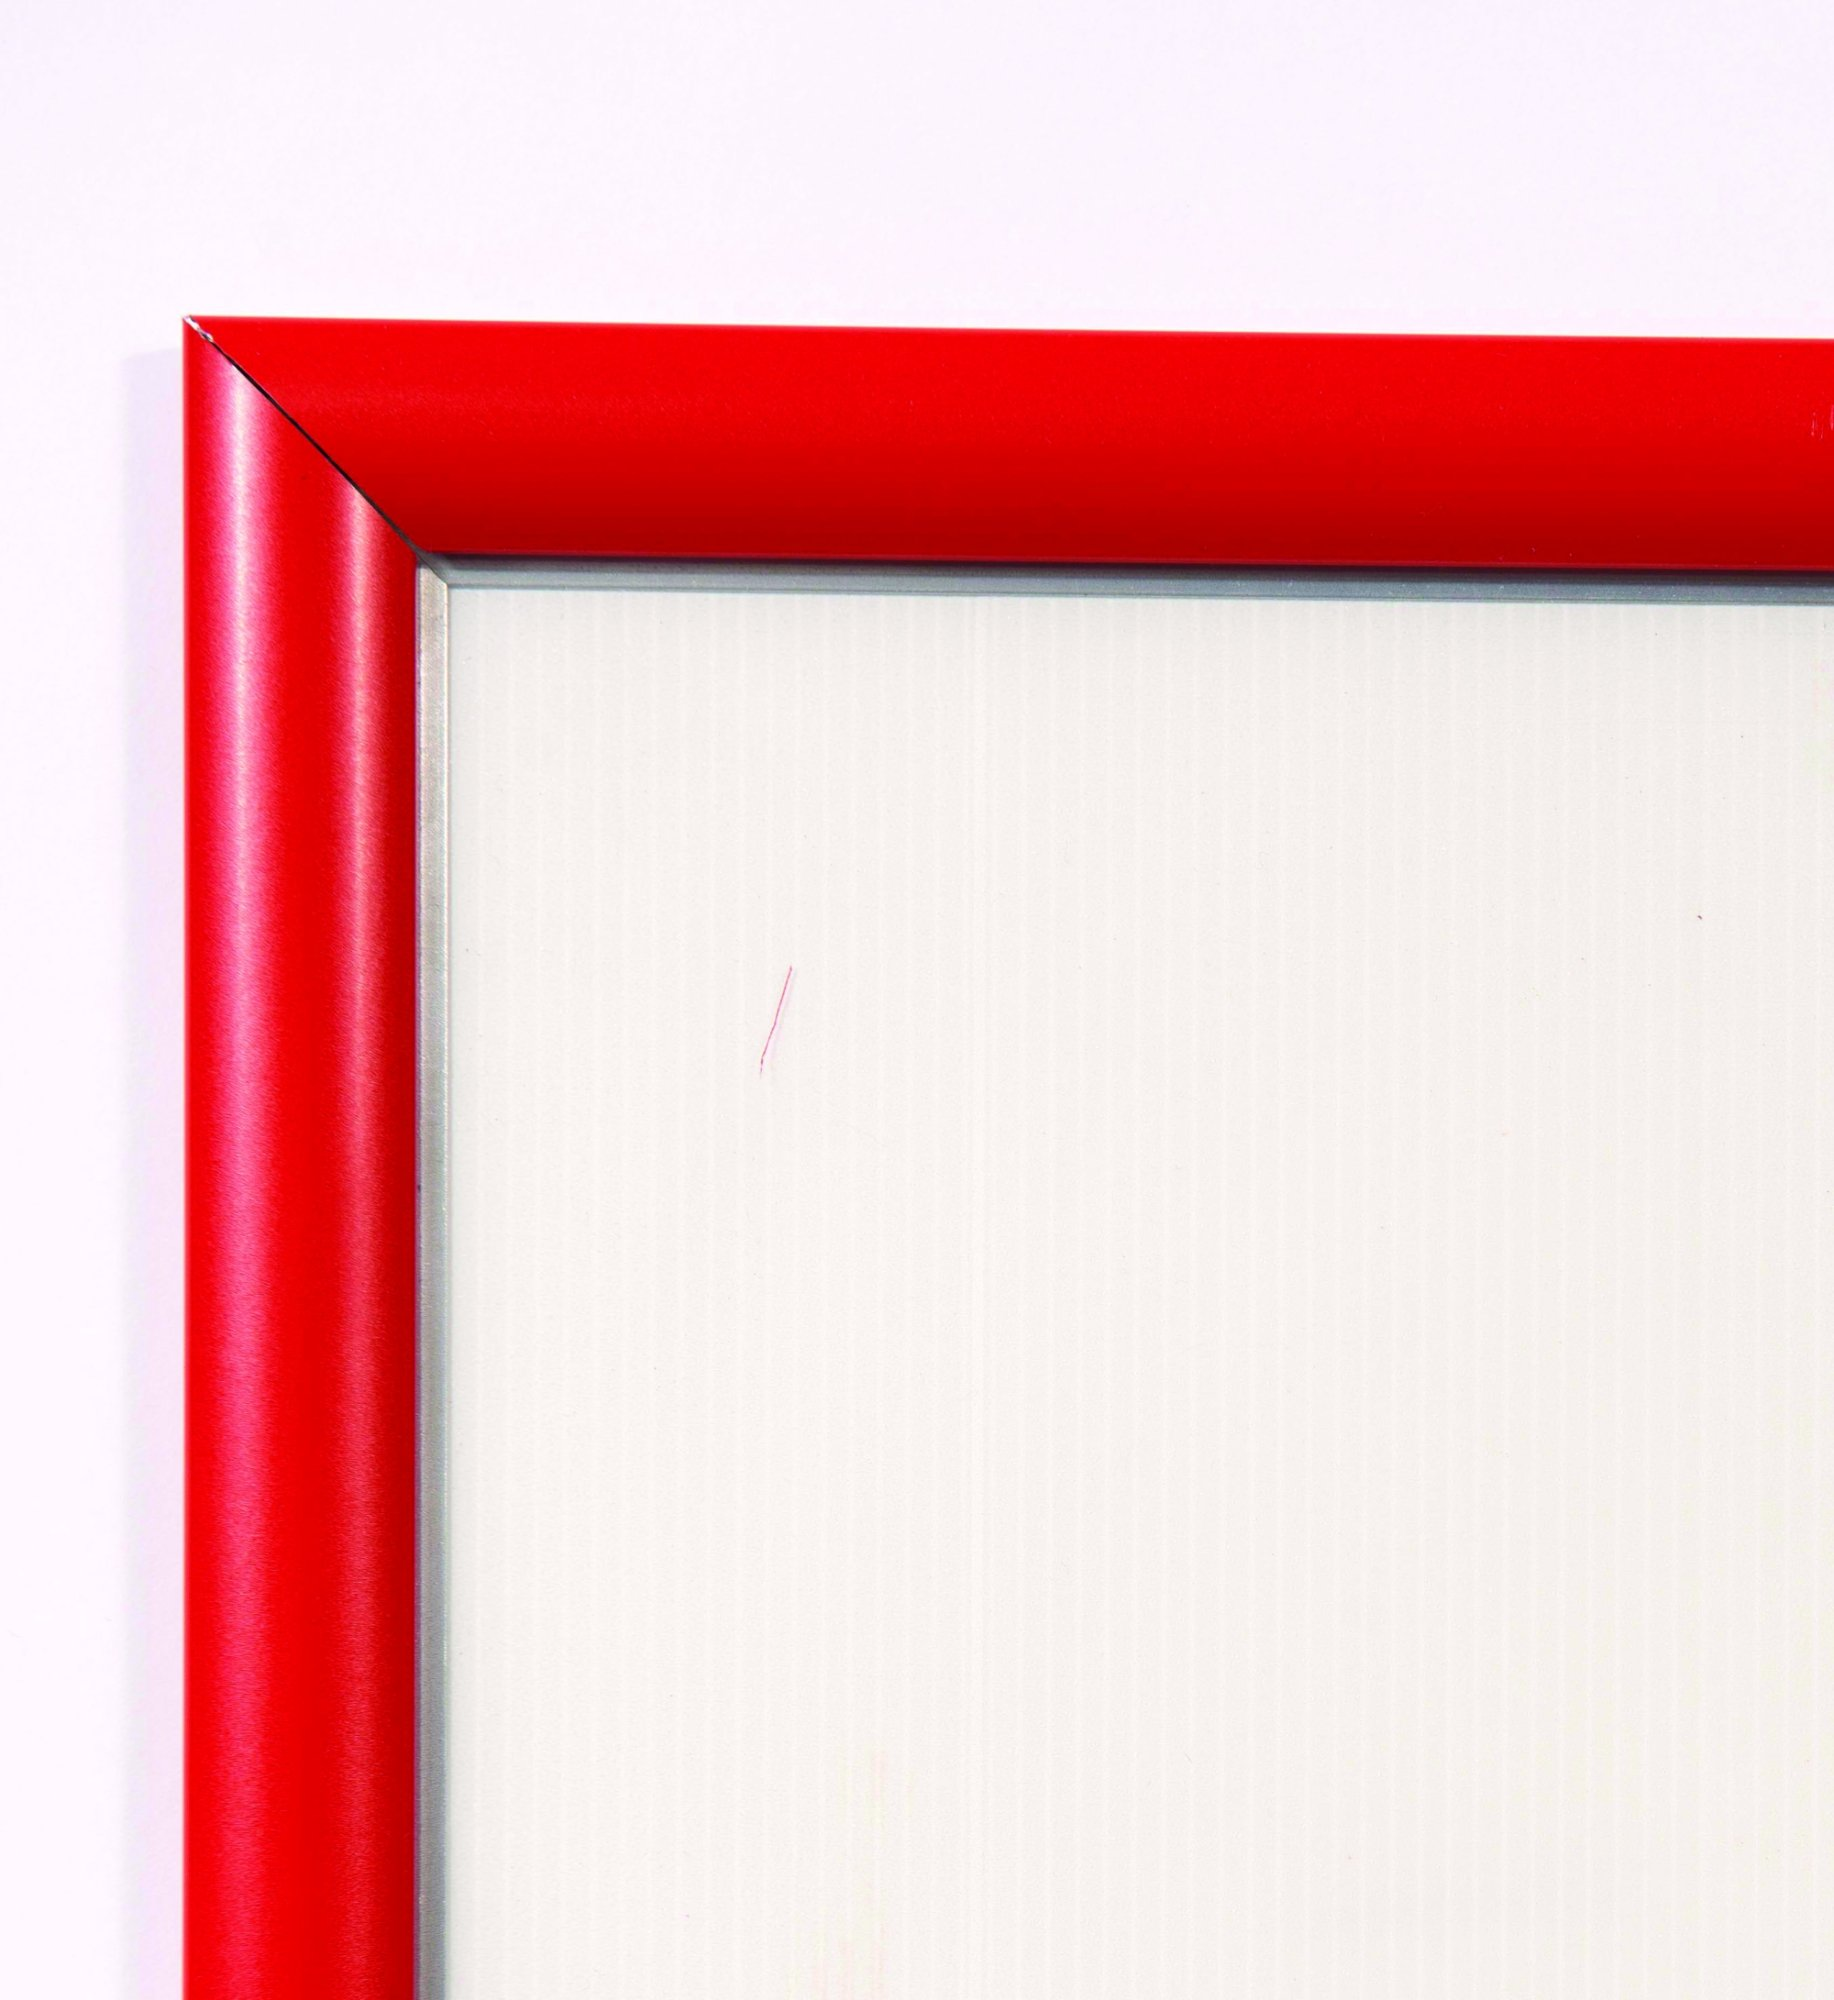 Spaceright Coloured Powder Coated Poster Display Frame - A1 635 x 885mm